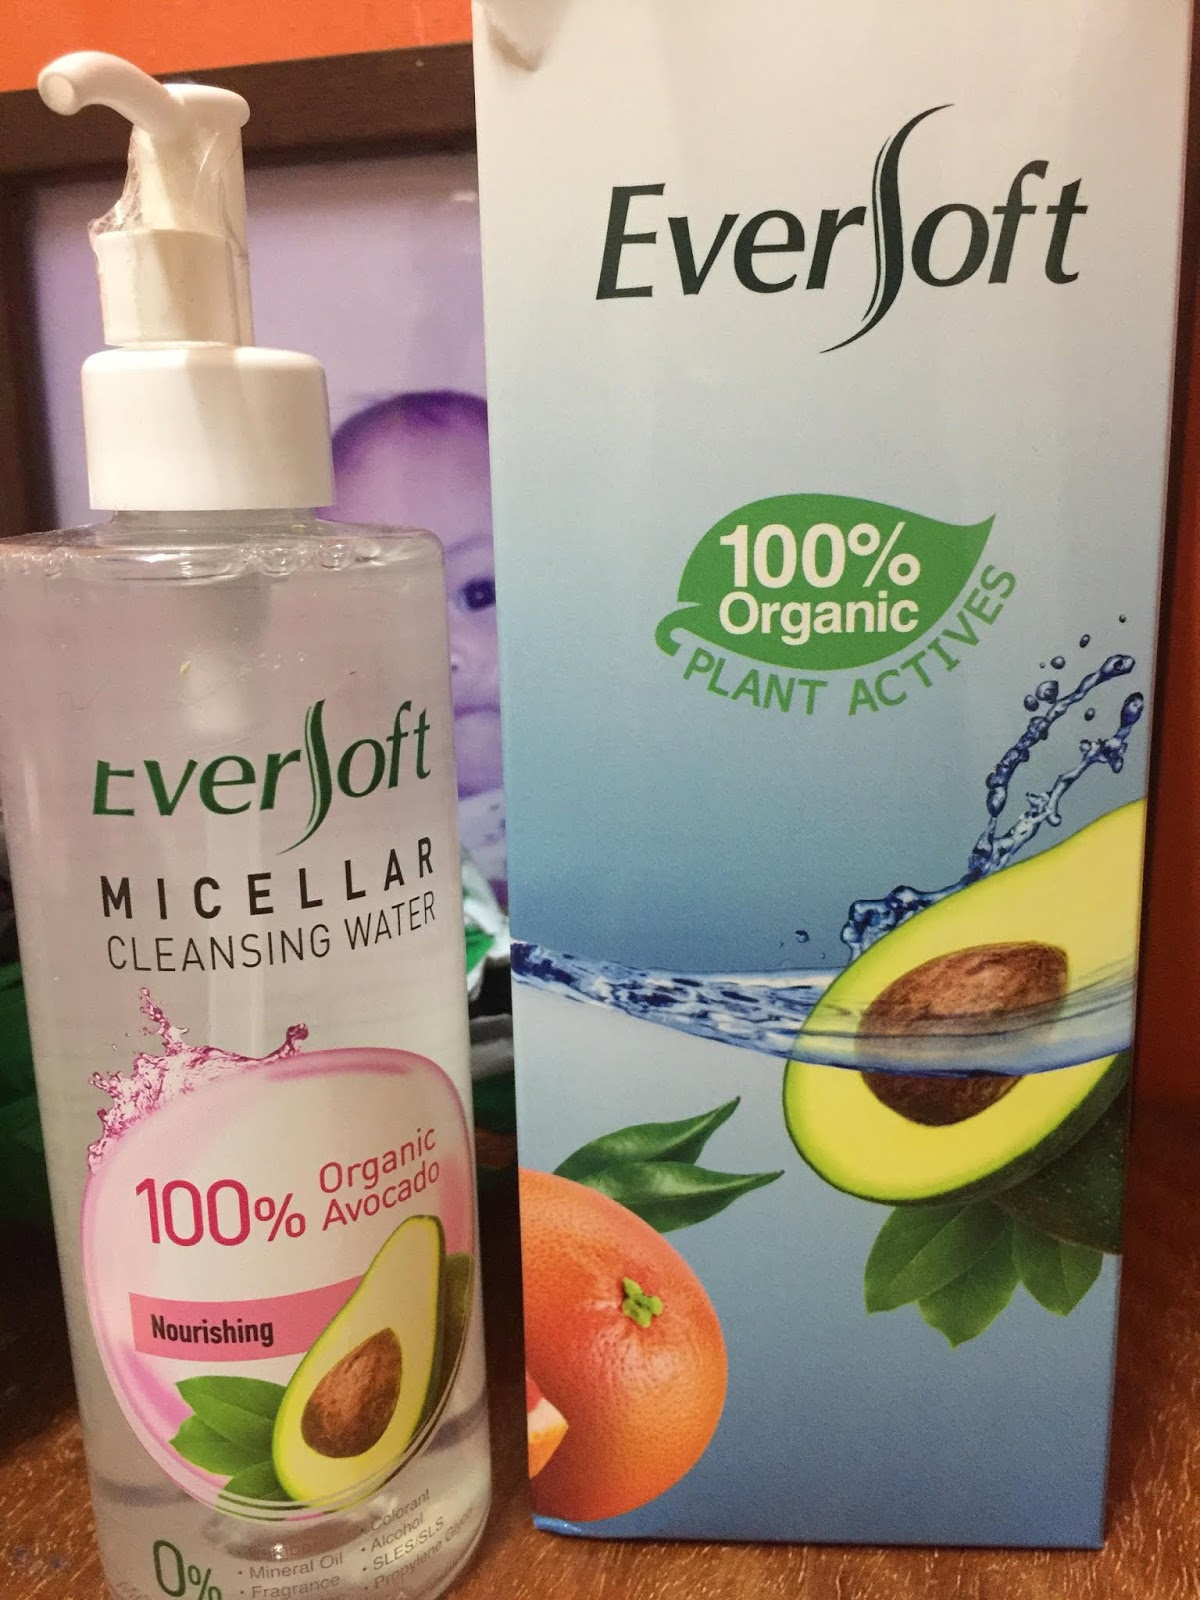 eversoft malaysia, miceller cleansing water, miceller cleansing water review, pembersih mekap